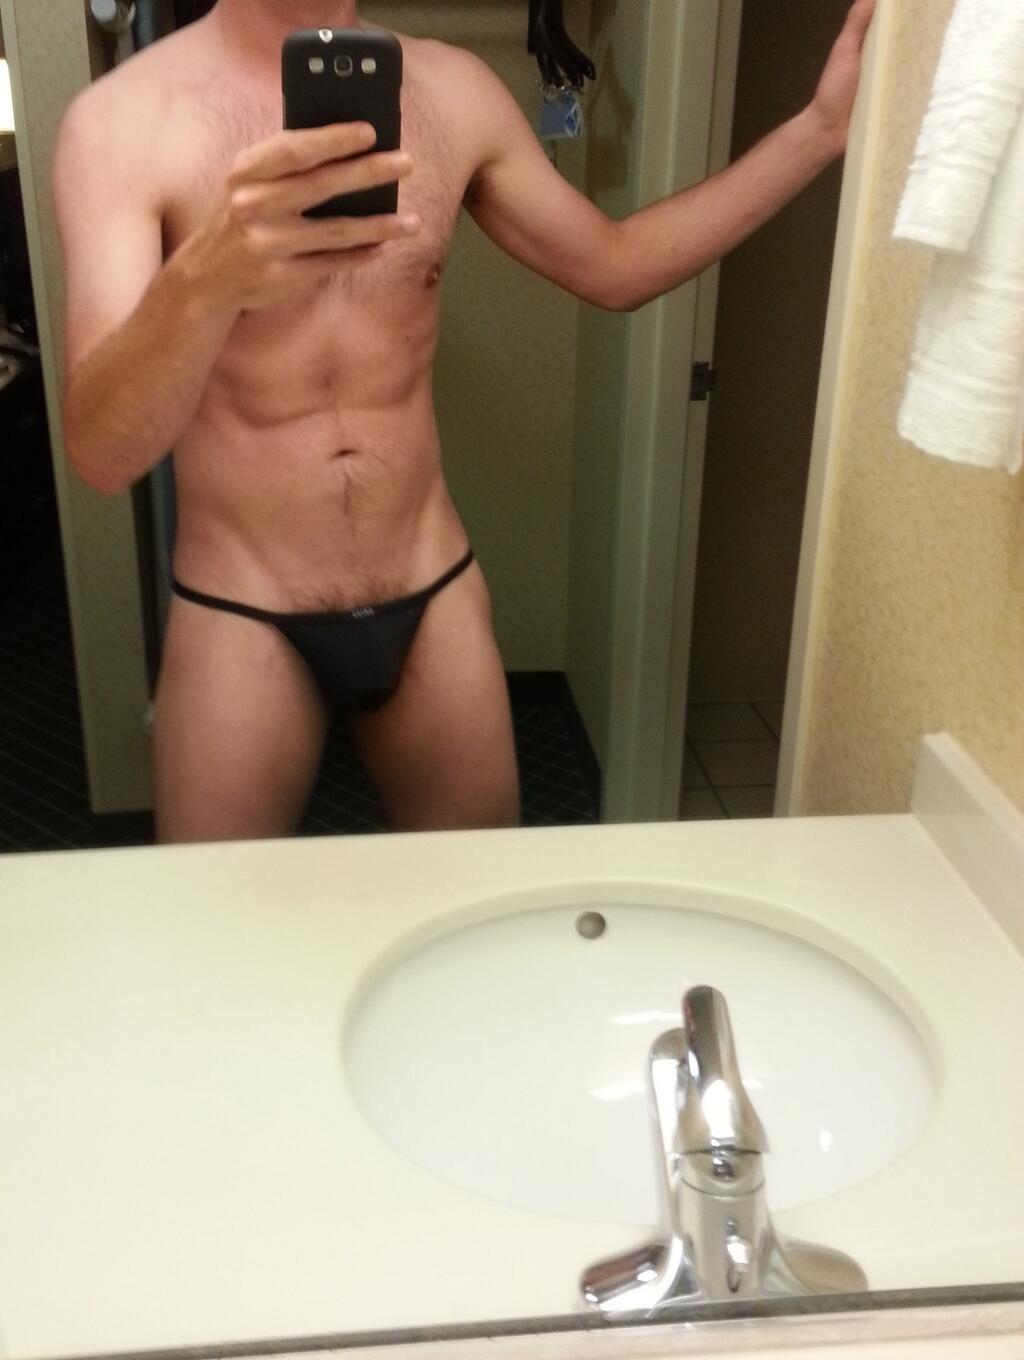 Brief Tale - Why I Love thongs - Bithongguy